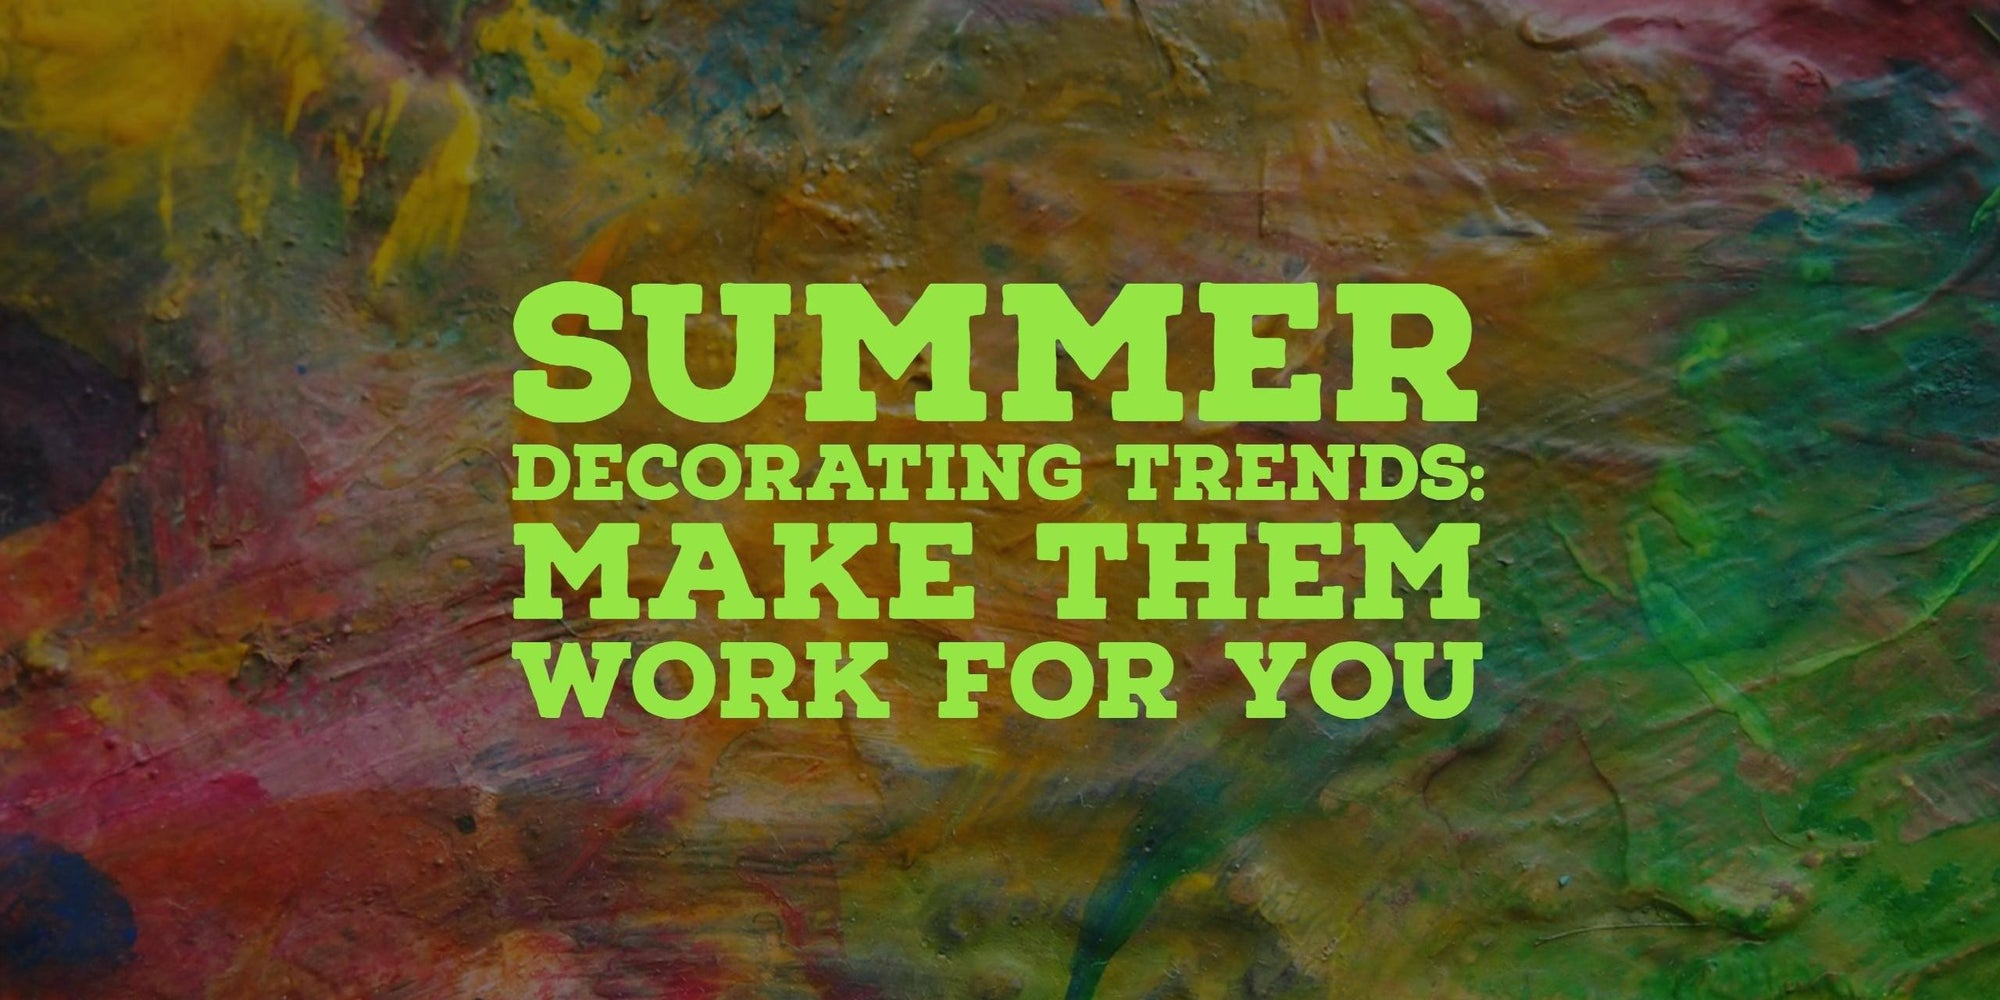 Summer Decorating Trends & How to Make Them Work for You